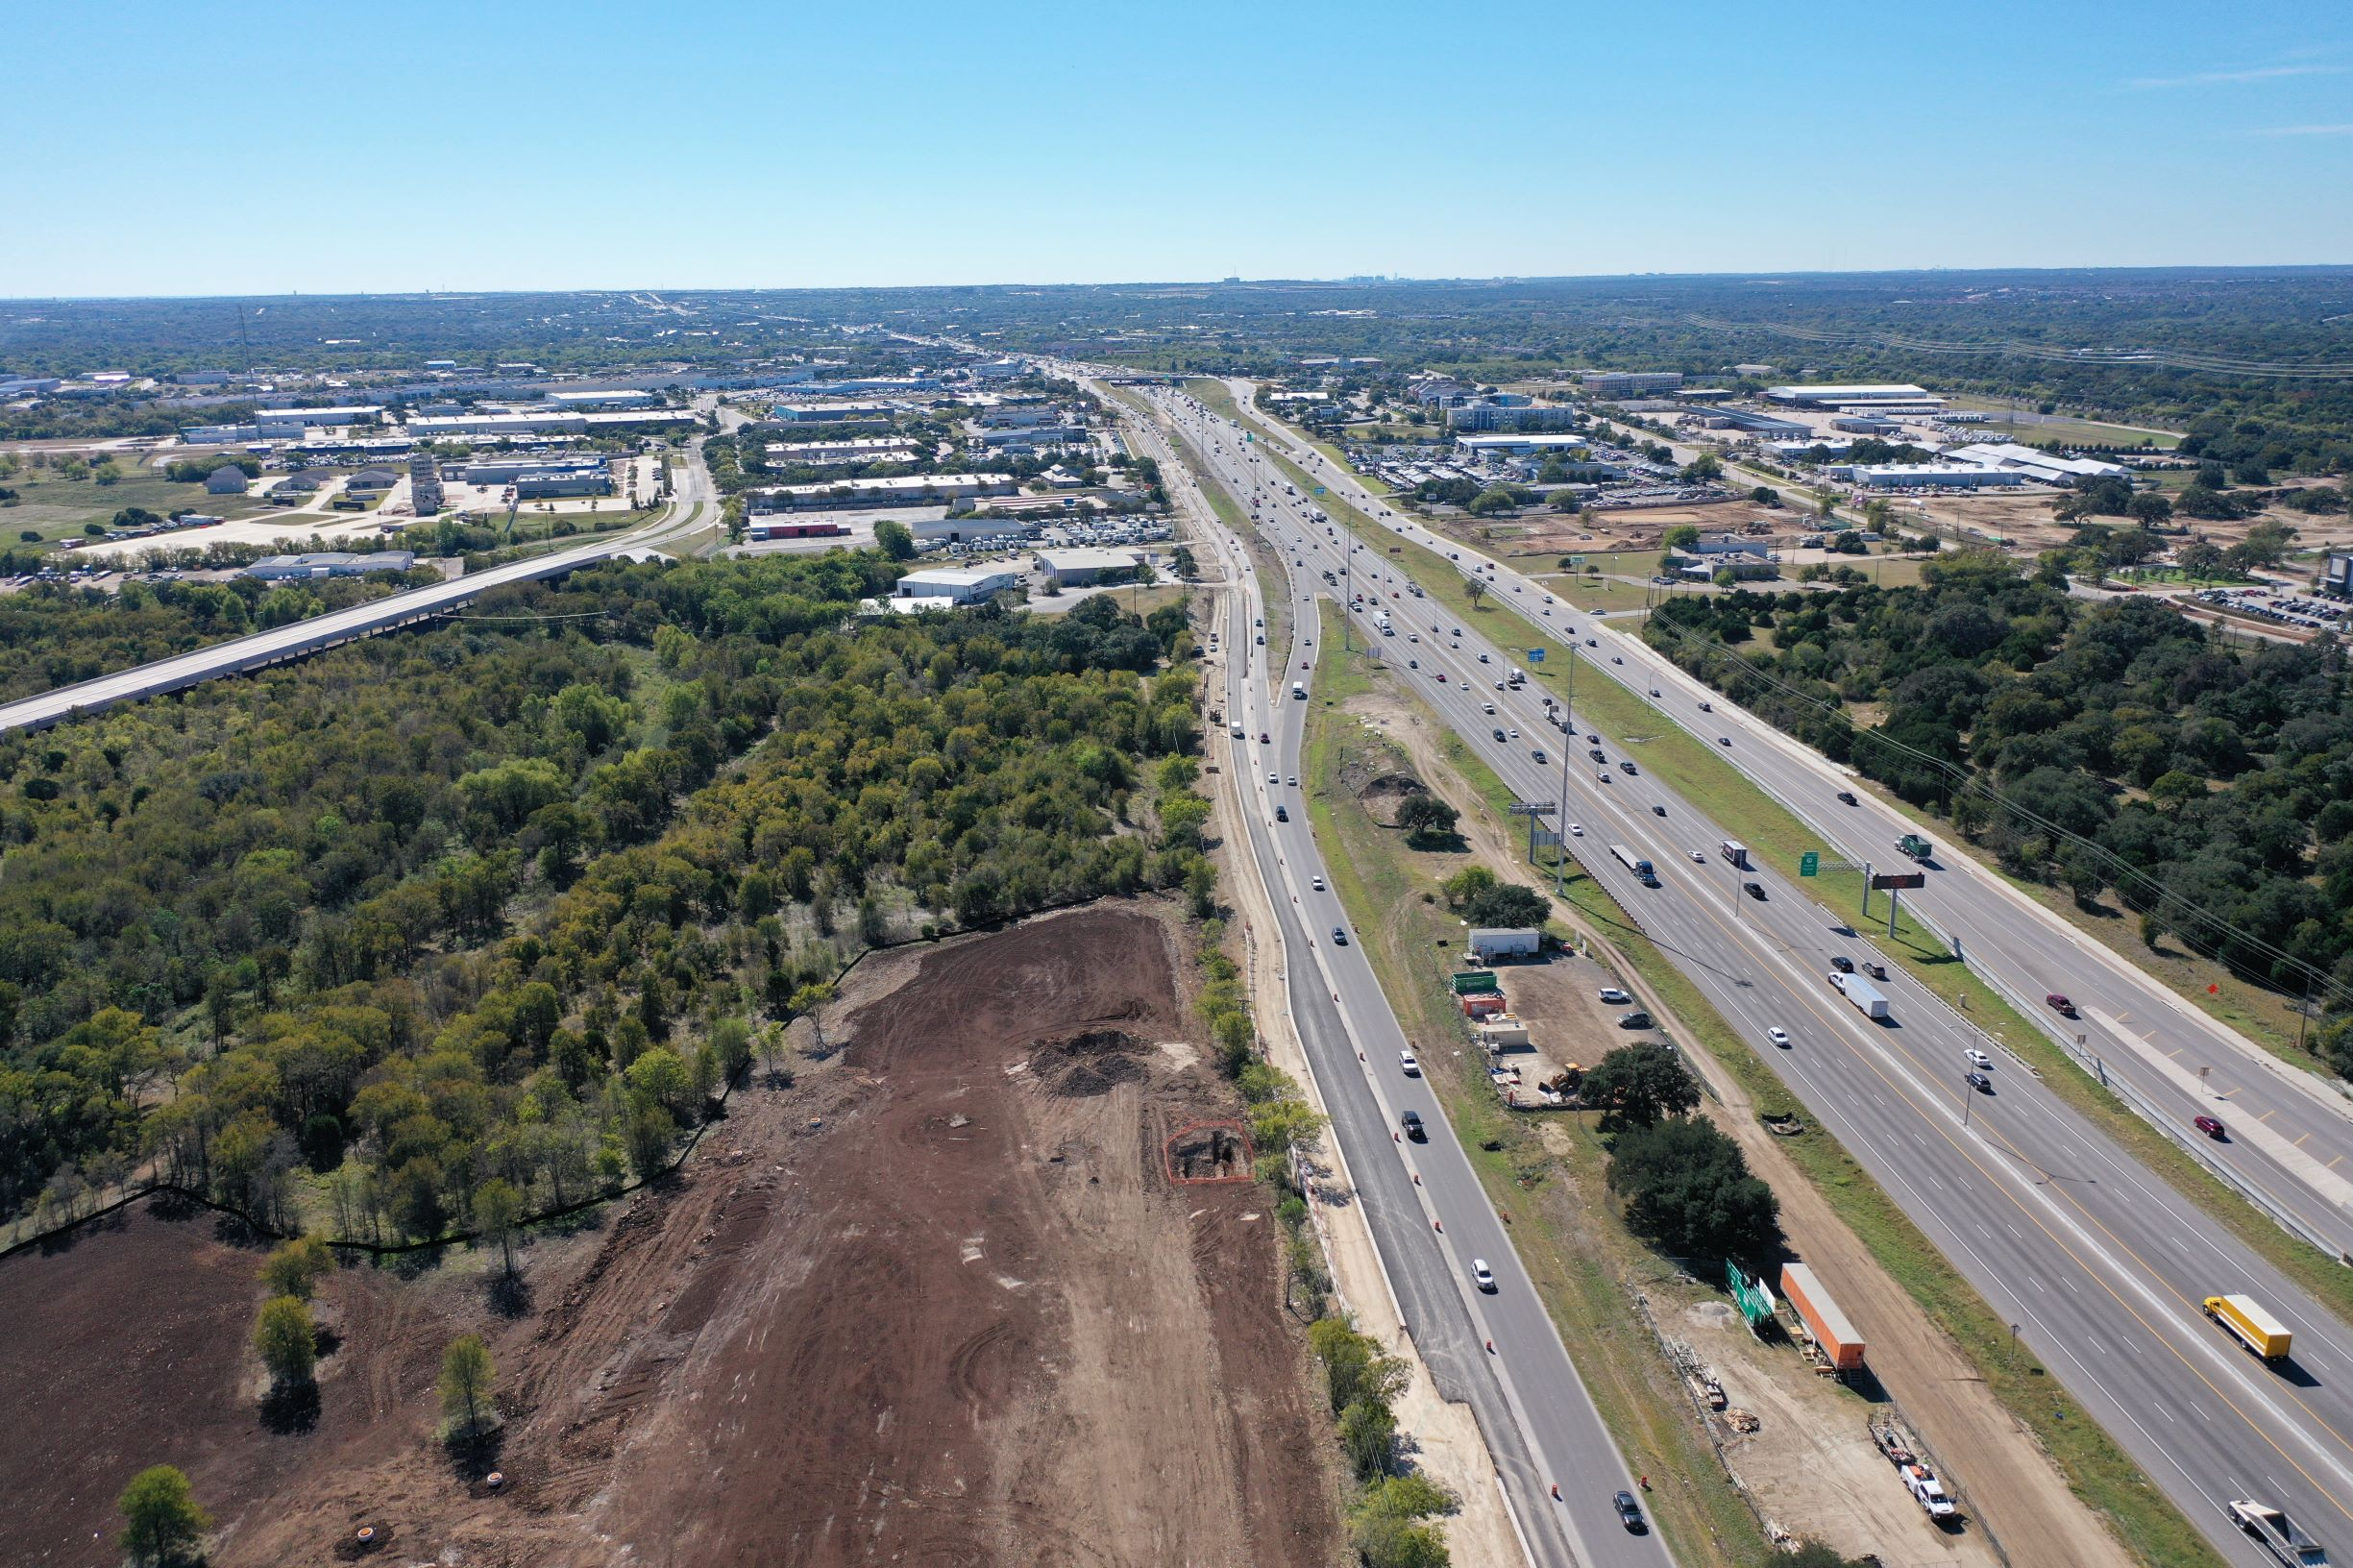 Northbound I-35 from RM 1431 to FM 3406 frontage road widening progress - October 2020